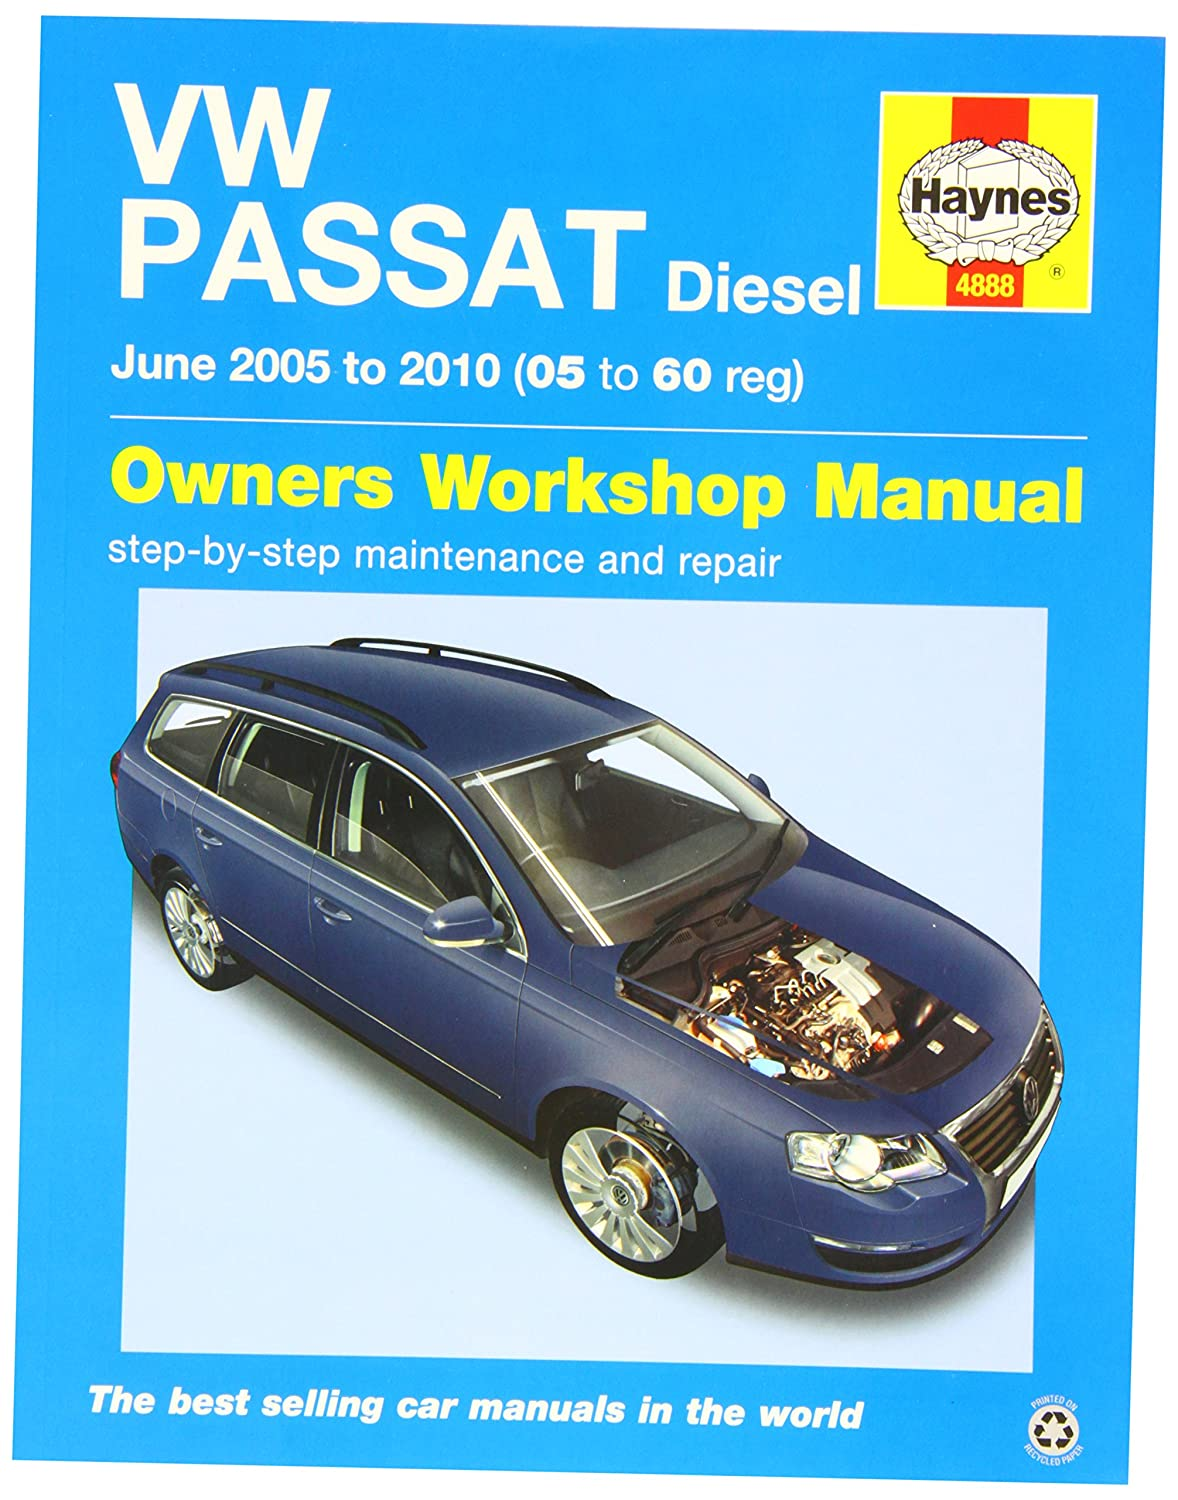 Haynes 4888 Service and Repair Workshop Manual: Amazon.co.uk: Car &  Motorbike